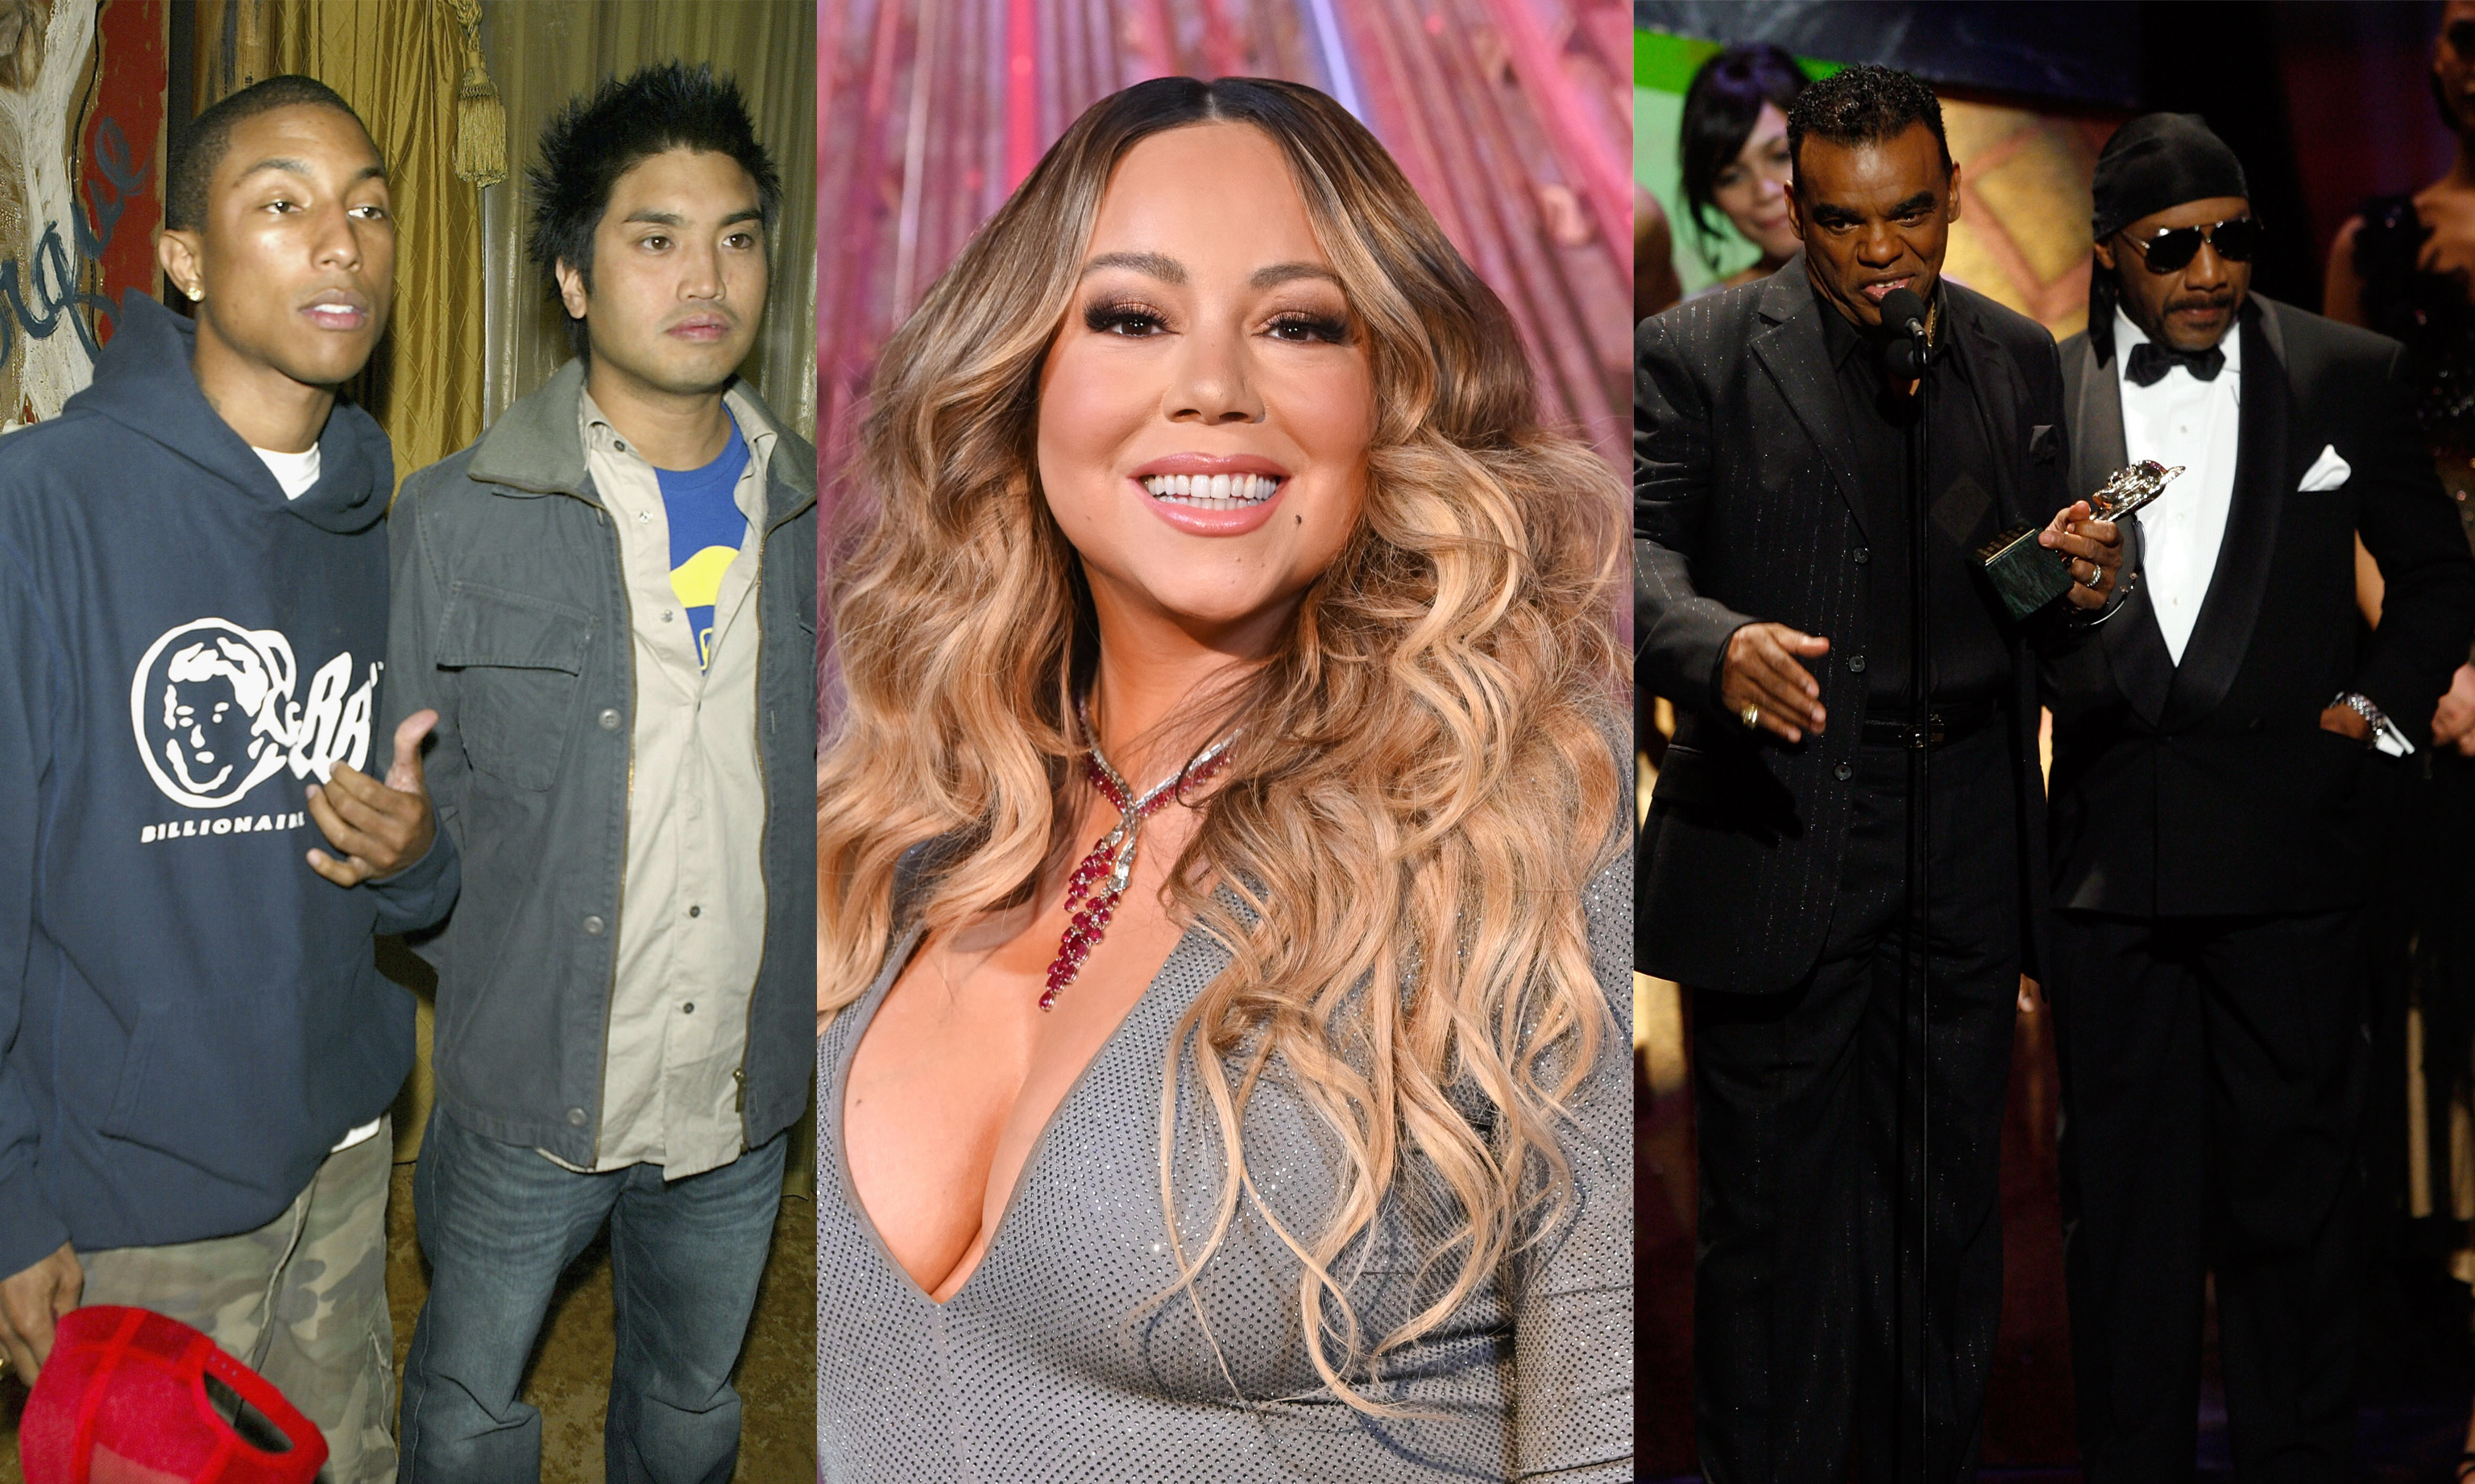 Mariah Carey, The Neptunes, The Isley Brothers have been announced for the 2020 Songwriters Hall of Fame, which goes down in June.